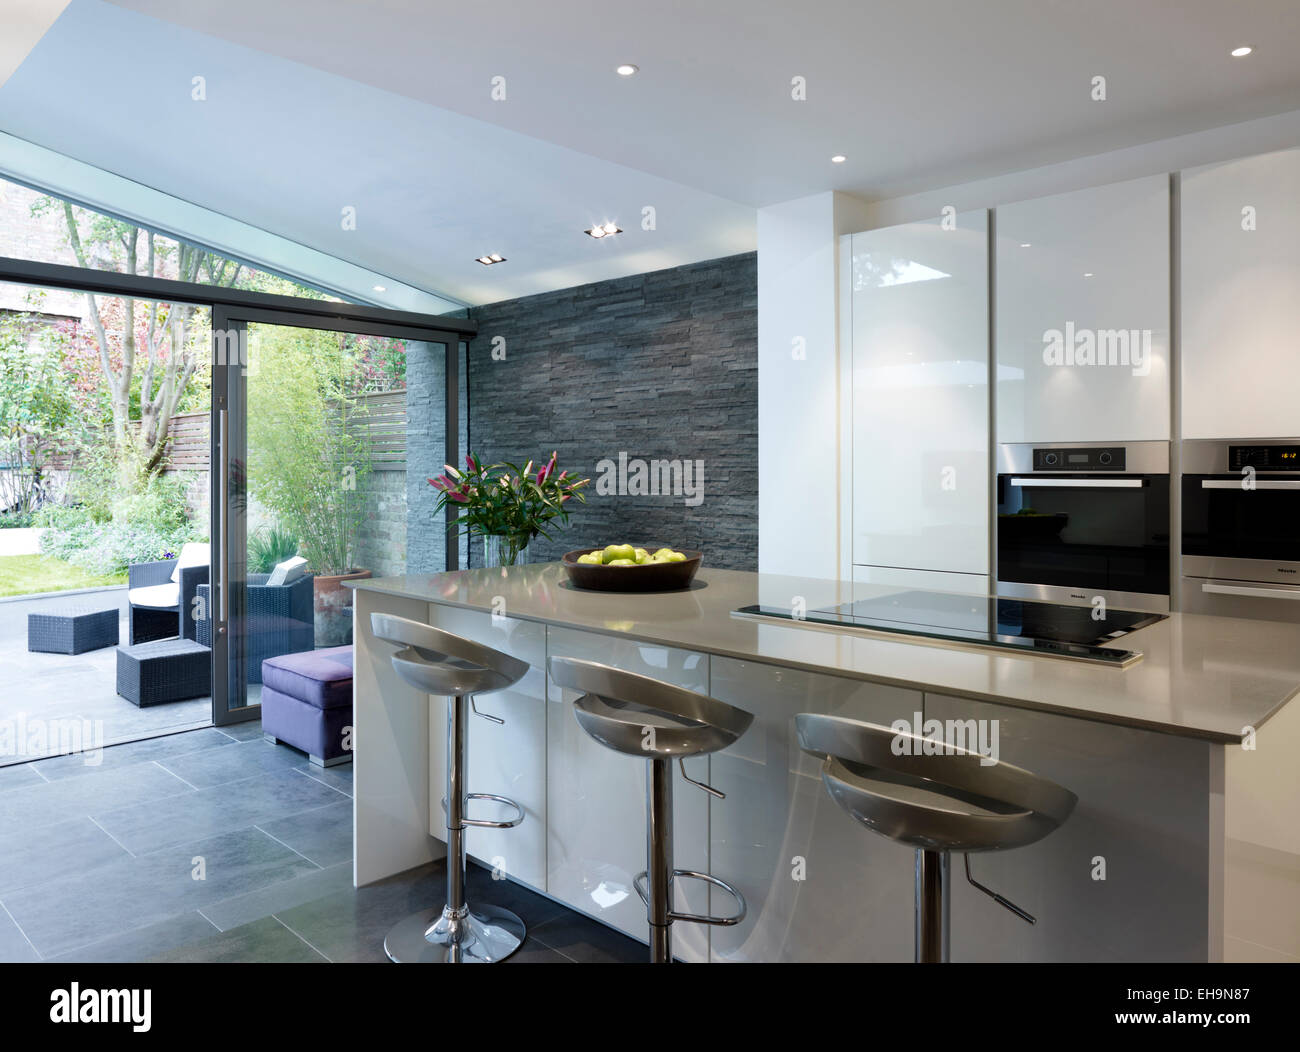 breakfast bar with stools in open plan kitchen and living area in